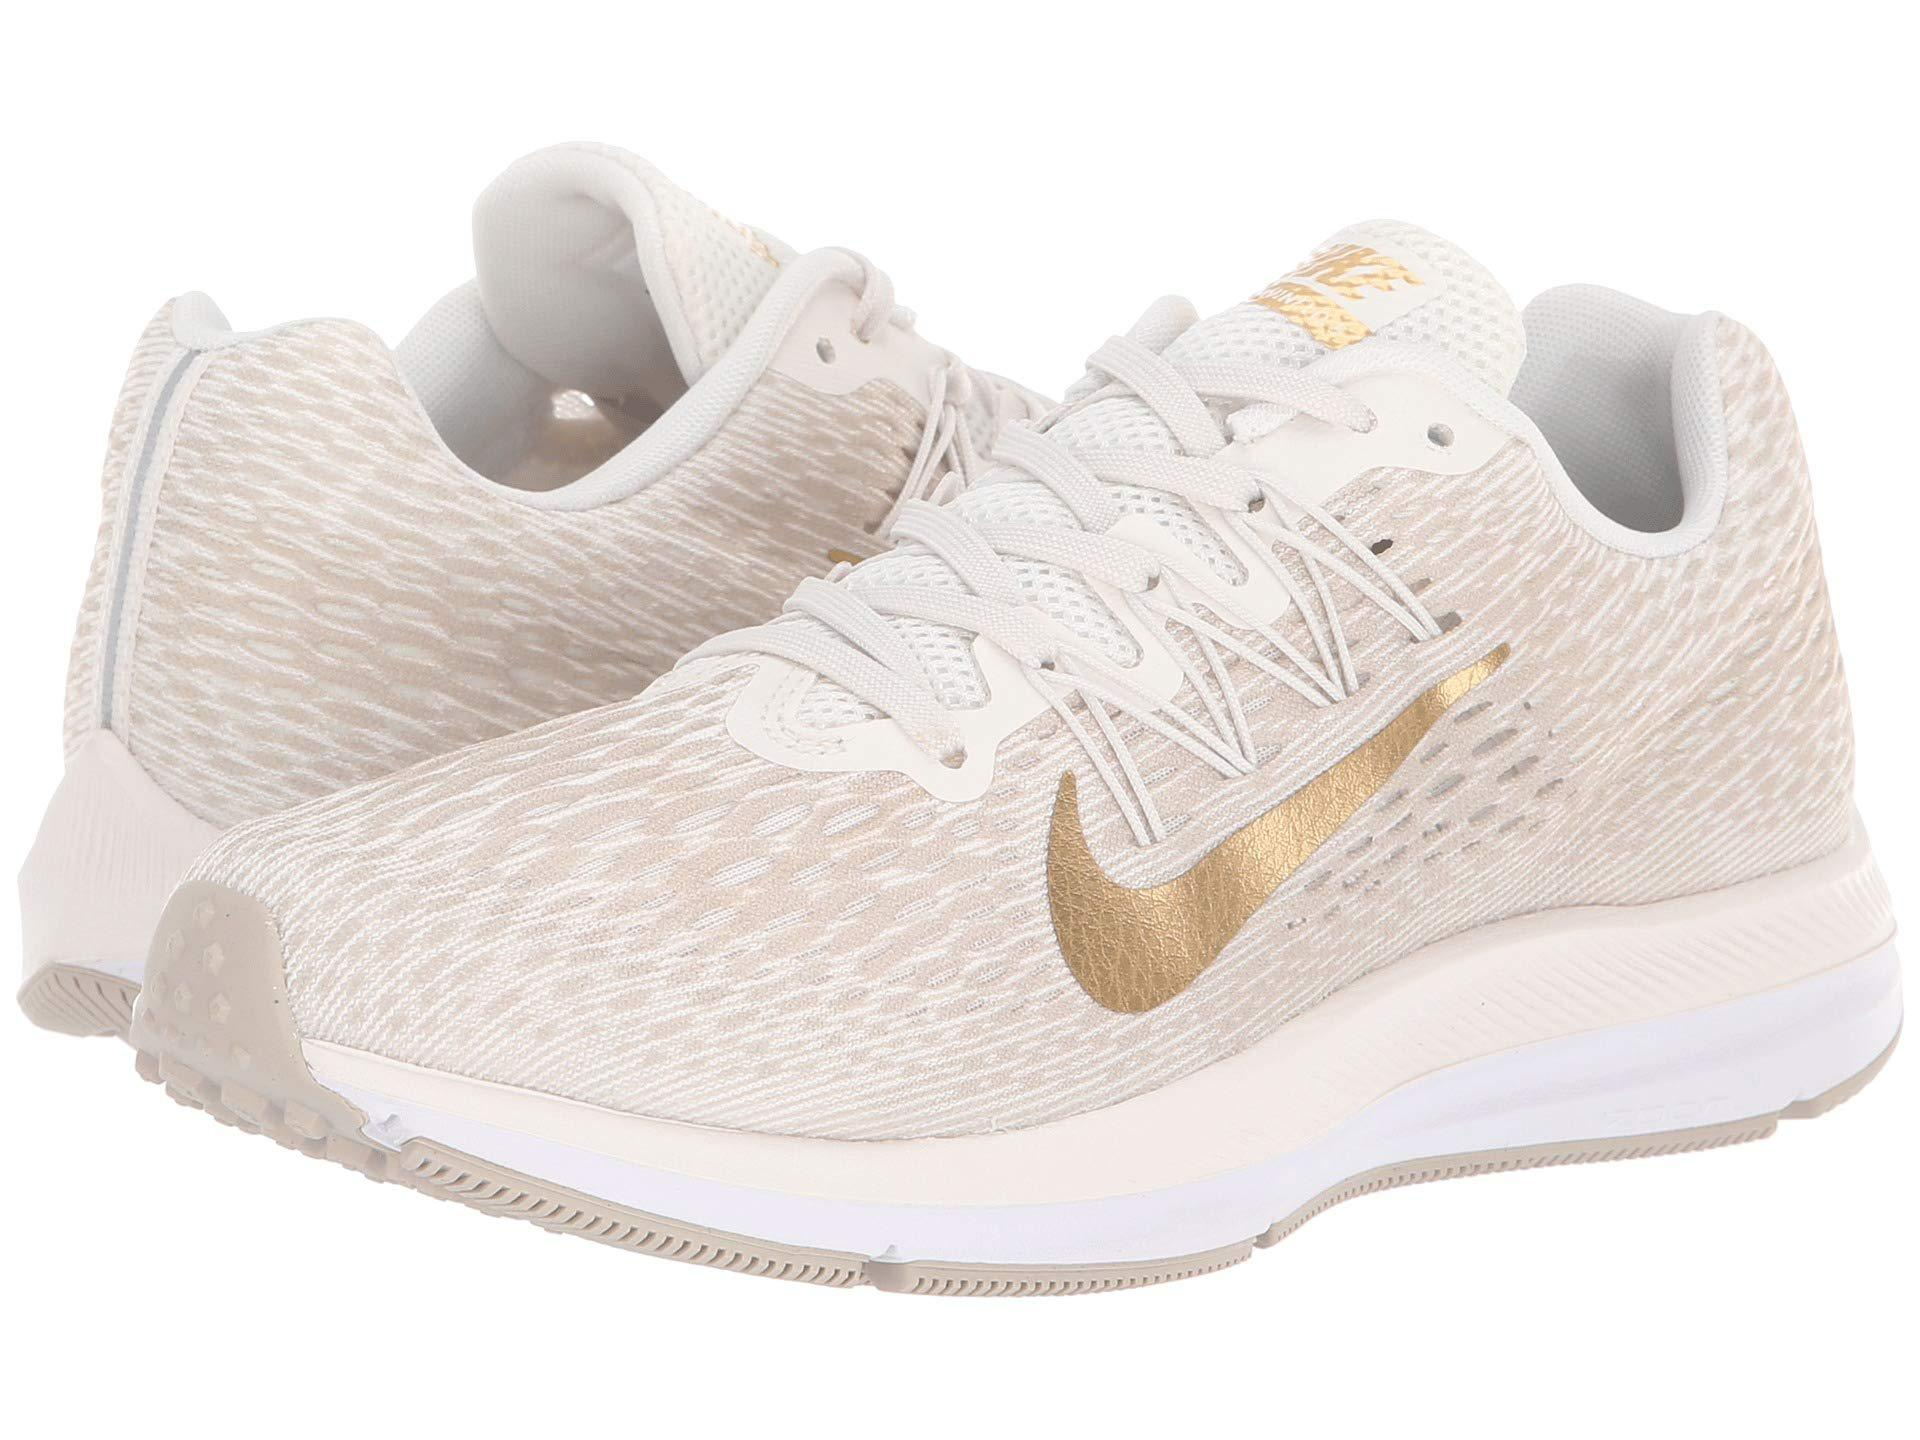 22579d5084e2 Nike. Air Zoom Winflo 5 (black white anthracite) Women s Running Shoes